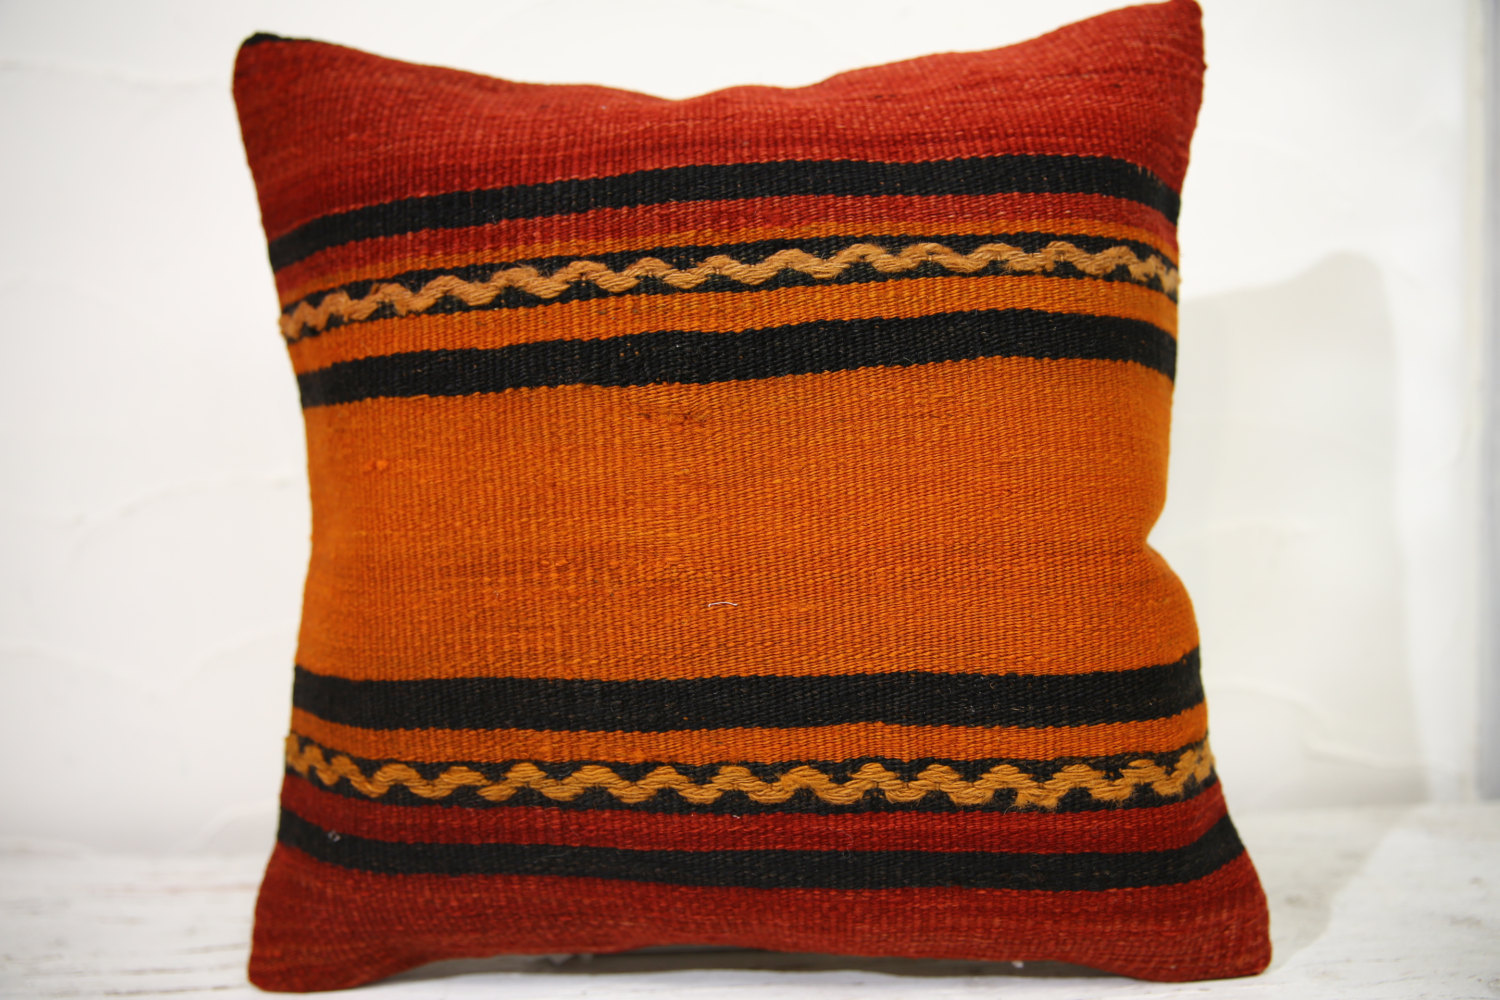 Kilim Pillows |16x16 | Decorative Pillows | 756 | Accent Pillows , turkish pillo